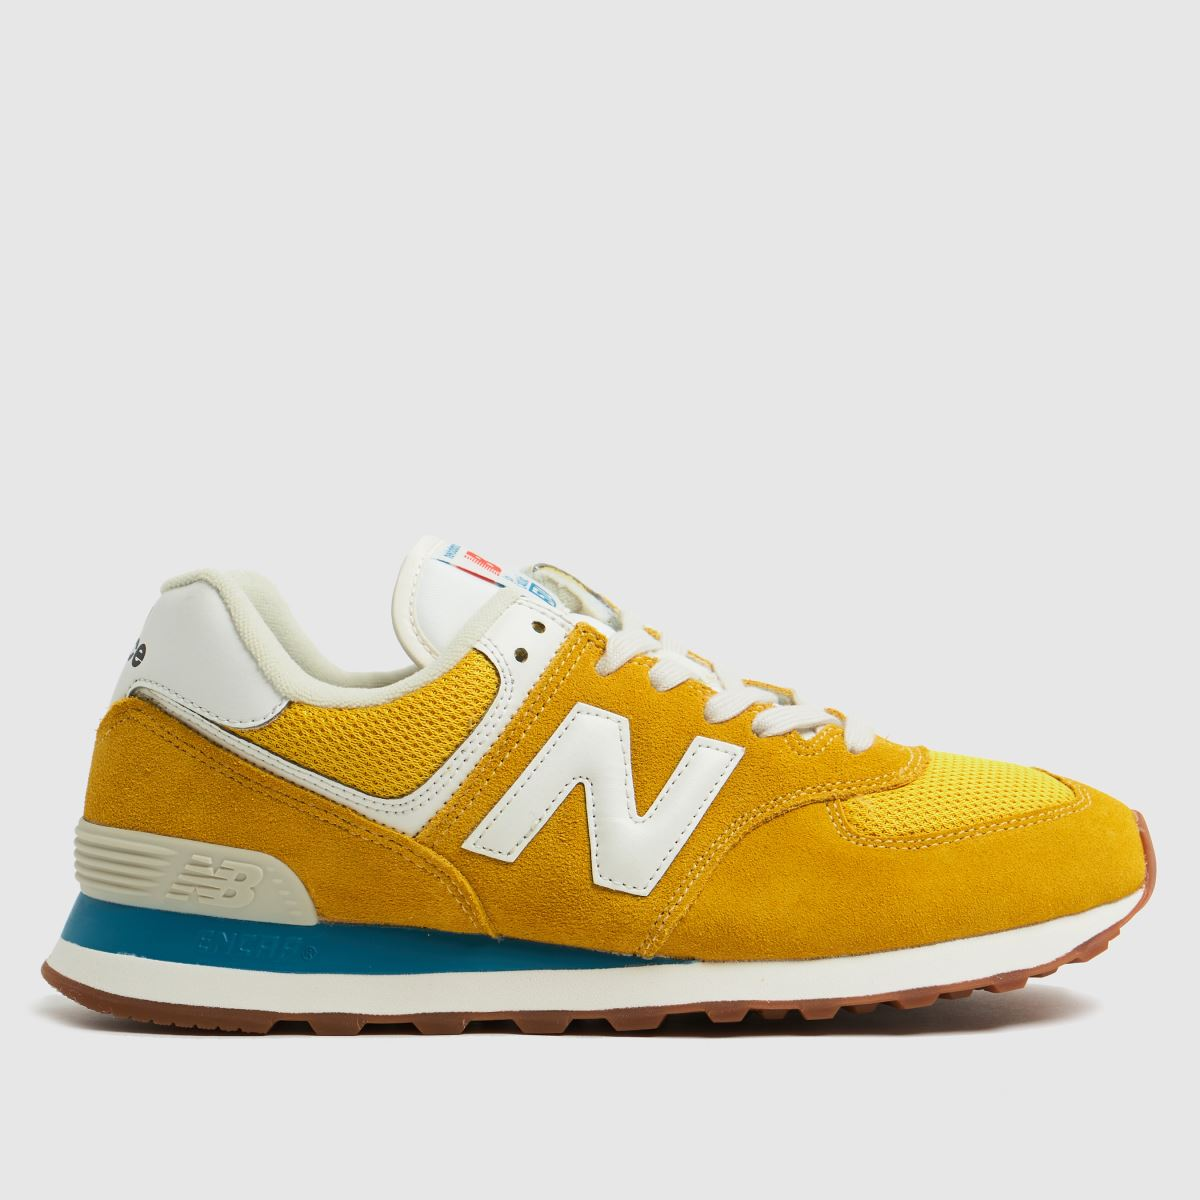 New Balance Gold 574 Trainers